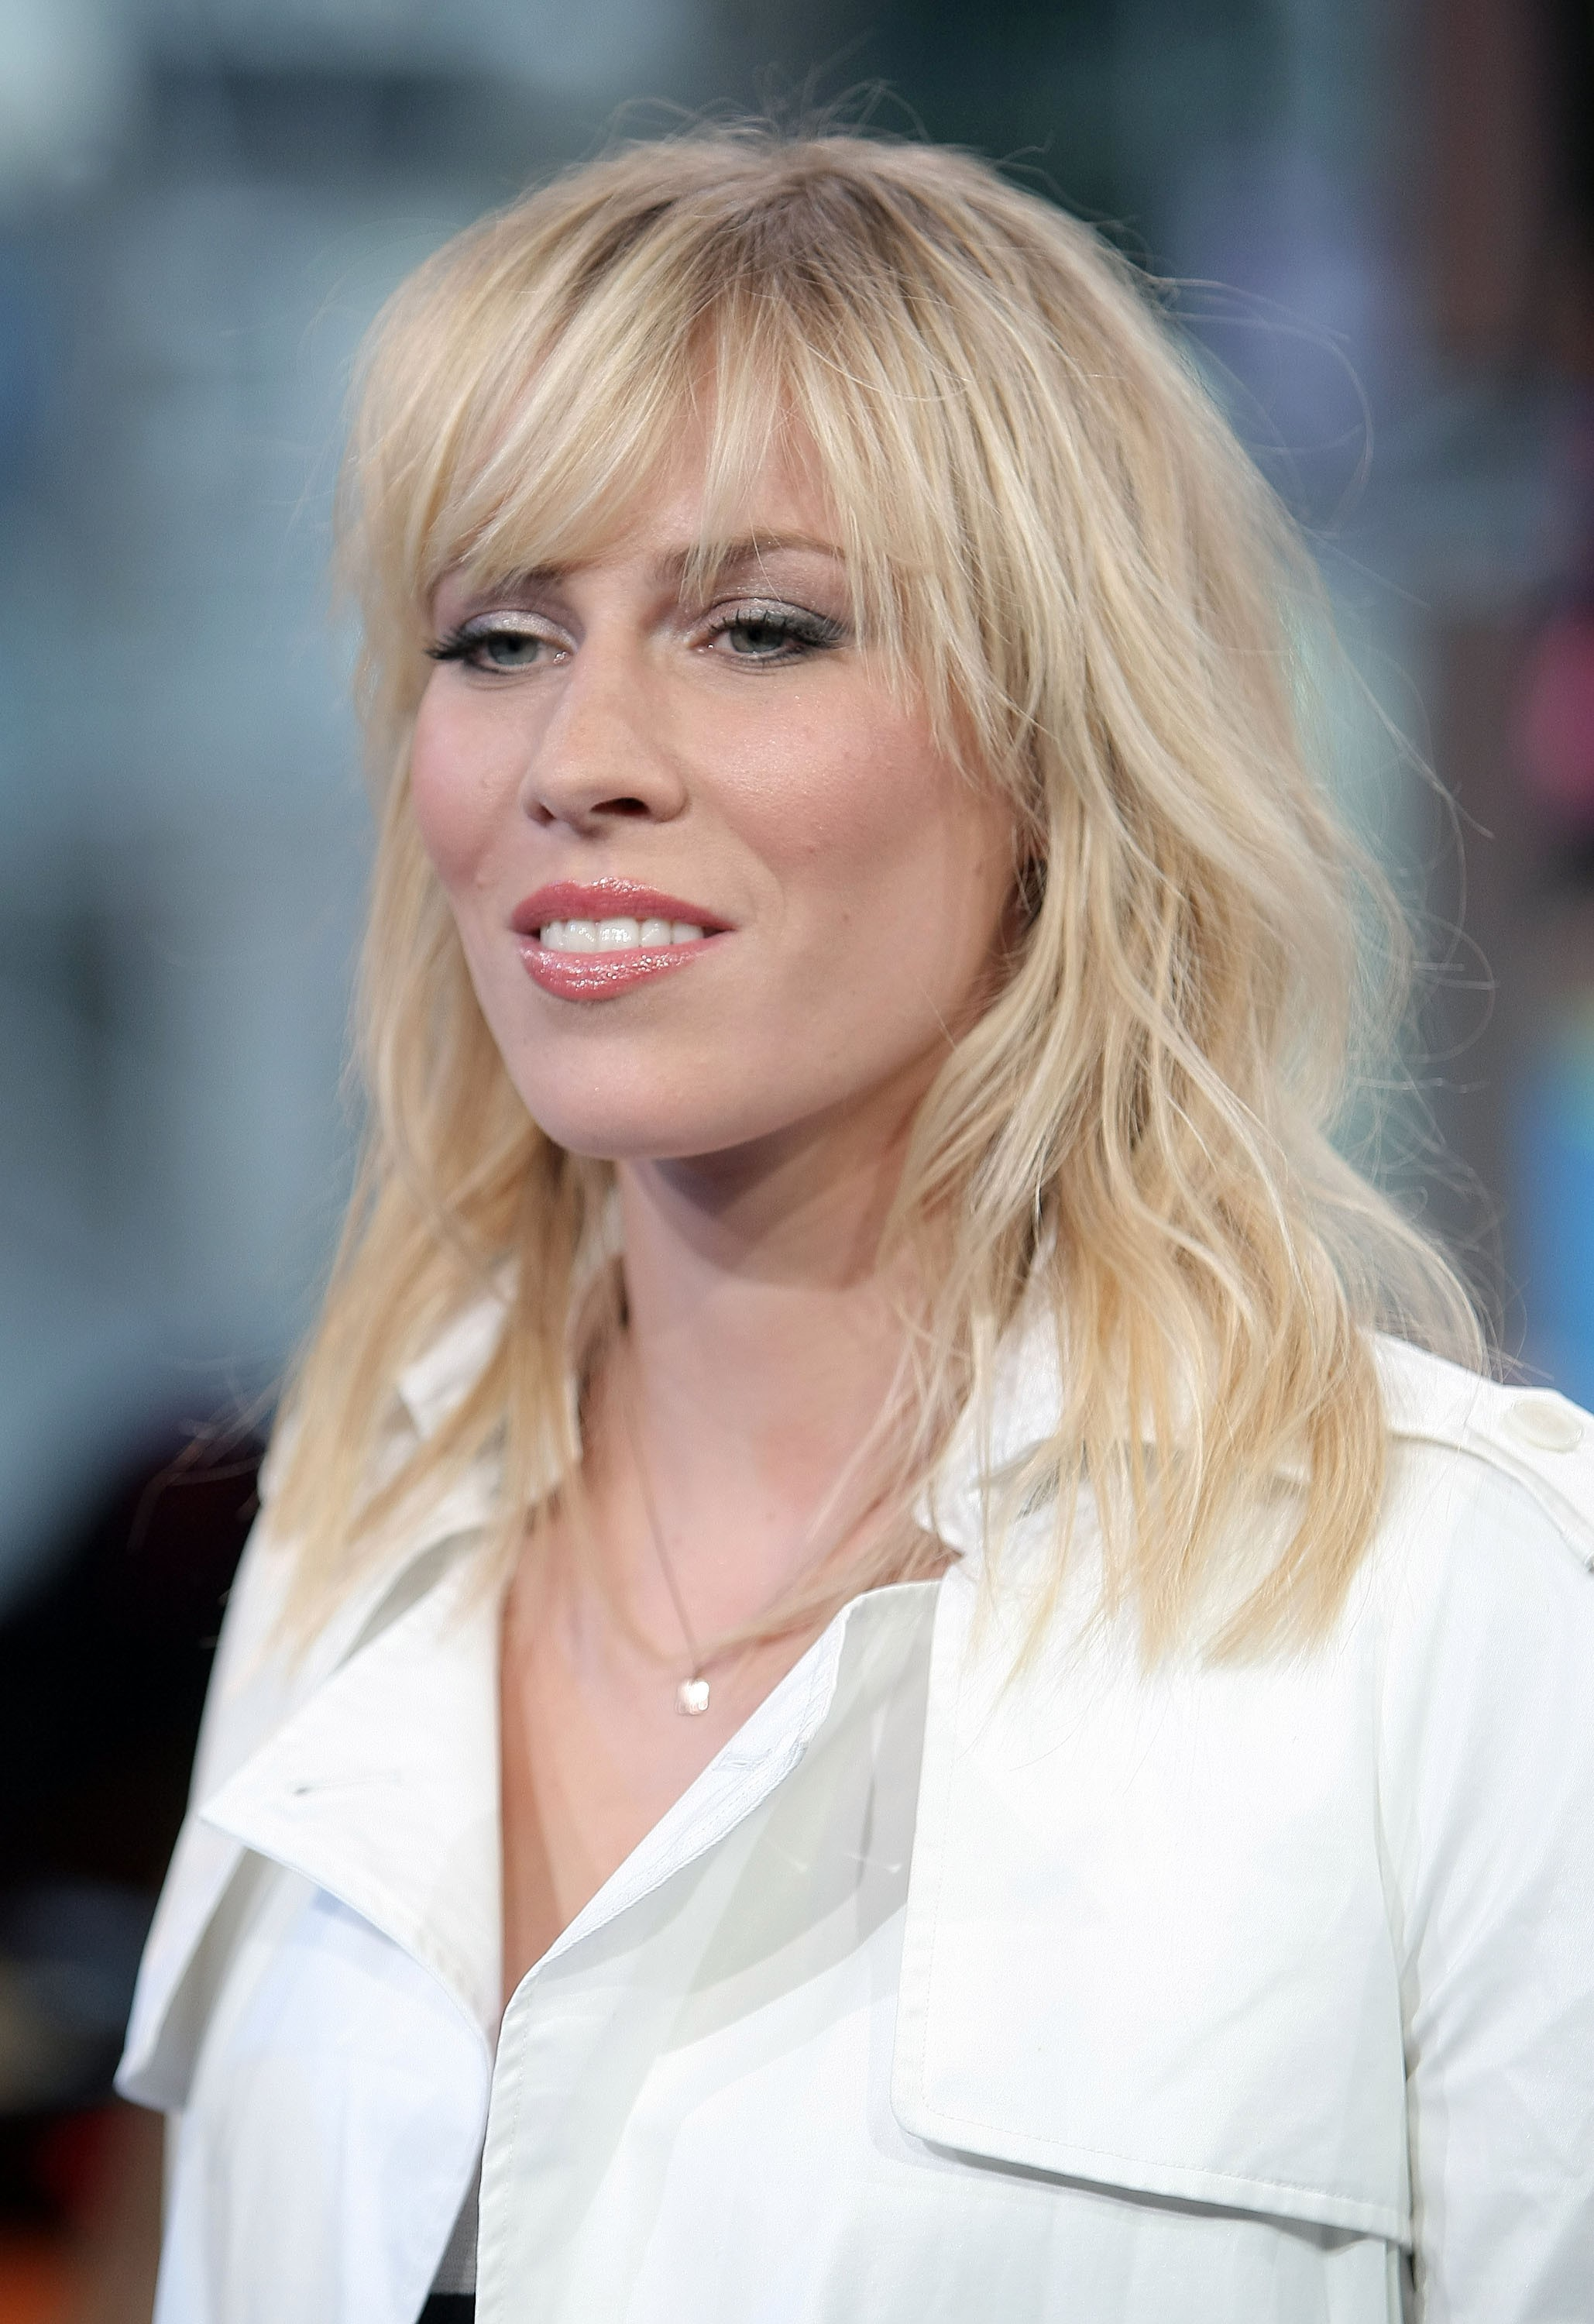 mtv Natasha Bedingfield HD Wallpaper